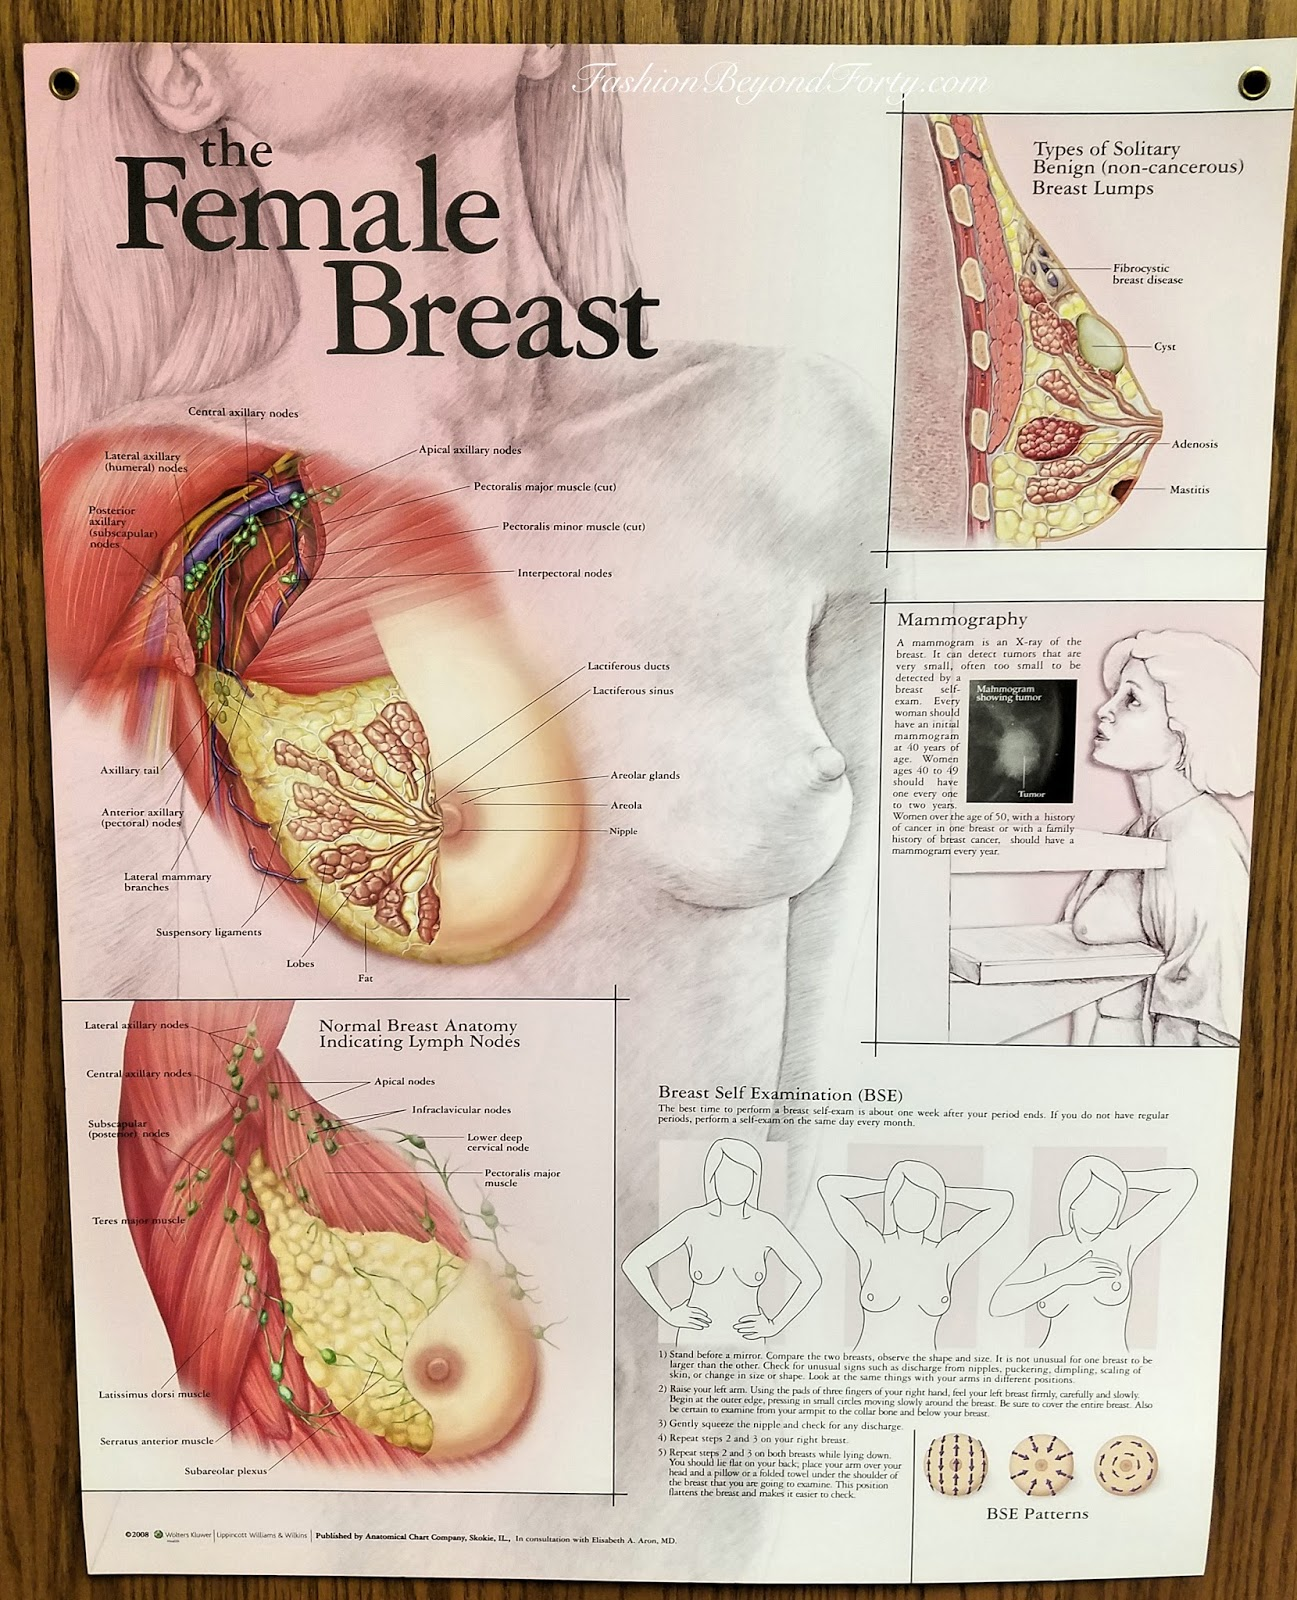 Fibrocystic Breast Disease - My Experience + 10 Home Remedies For Fibrocystic Breast Disease